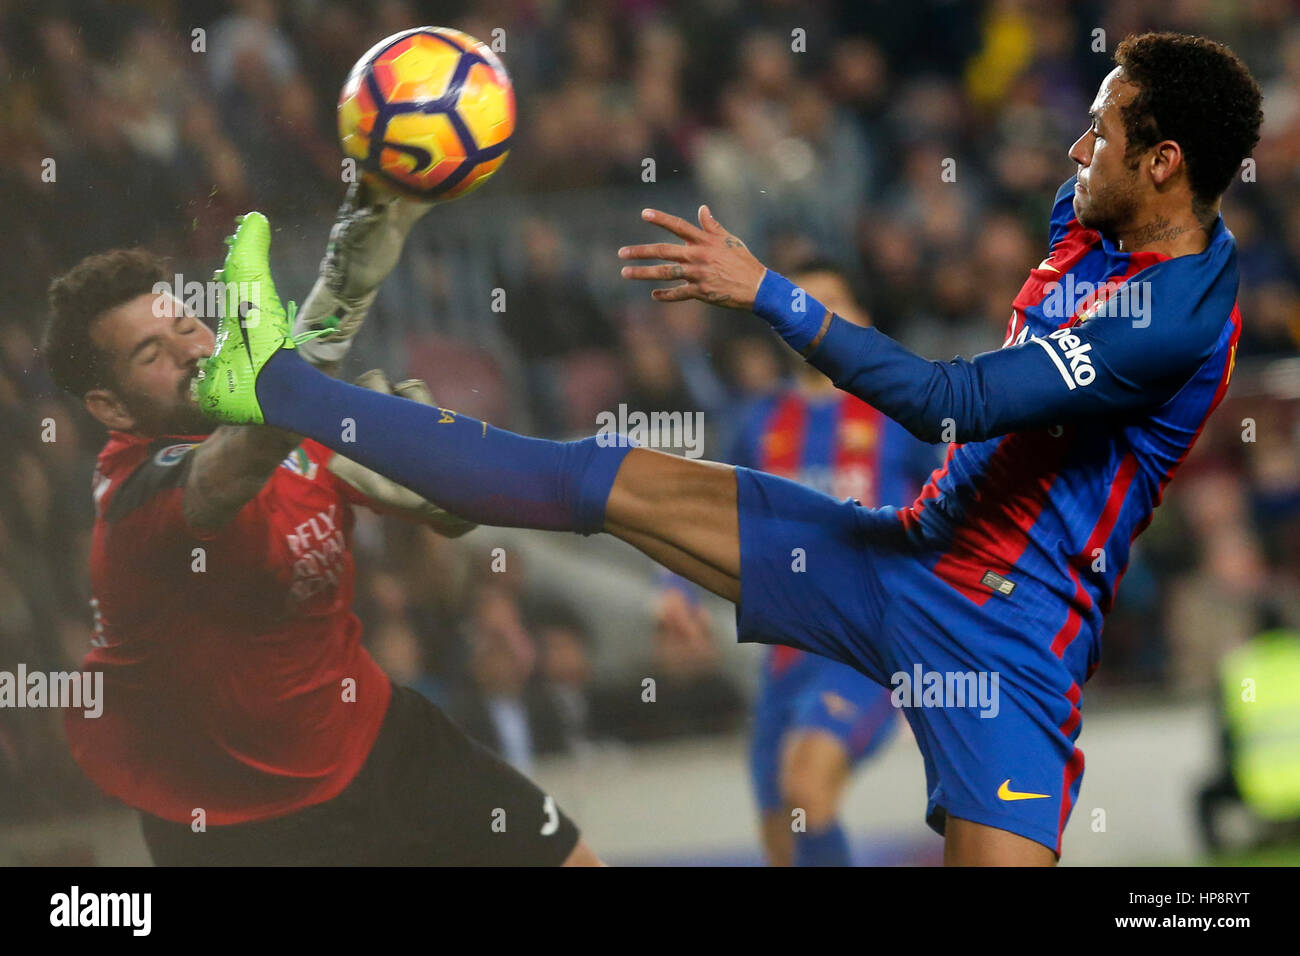 Barcelona, Spain. 19th Feb, 2017. Barcelona's Neymar (R) vies with Leganes' Iago Herrein during the Spanish - Stock Image